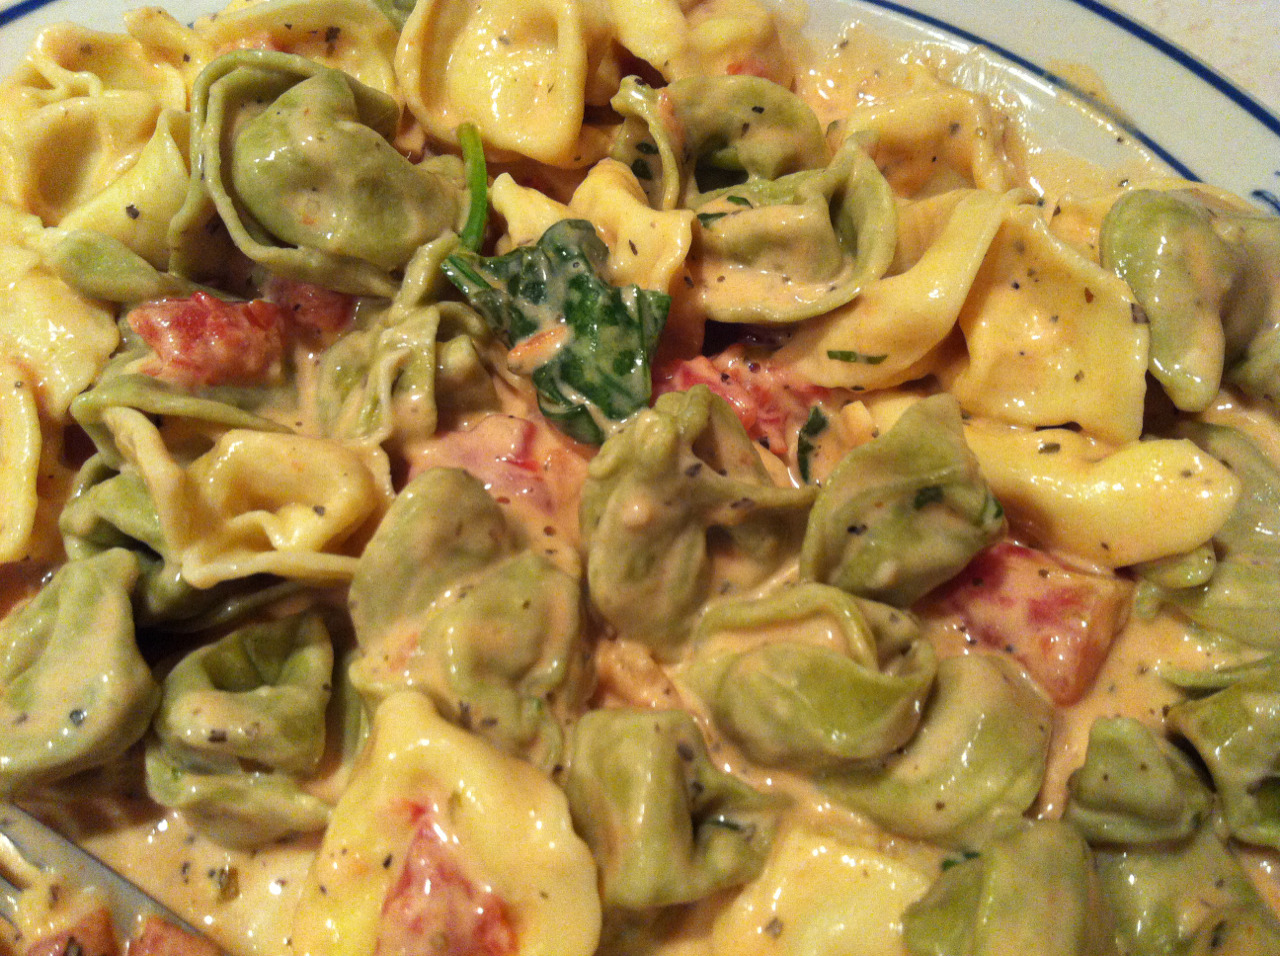 Tortellini with Spinach in a Tomato Cream Sauce. Difficulty: * This sauce has so much flavor… it is so incredibly delicious and I couldn't believe how easy it was to make.  I copied the recipe exactly from here: http://allrecipes.com/recipe/spinach-tomato-tortellini/detail.aspx Ingredients - 1 large package of tortellini.  I bought a 20 oz package of tortellini and still had leftover sauce, but that's ok because you can jar it and freeze it to reuse. - 1 can diced tomatoes with italian seasoning - 1 cup chopped fresh spinach - 1/2 tsp salt - 1/4 tsp pepper - 1 1/2 tsp dried basil - 1 tsp minced garlic (this was 2 cloves for me) - 2 tbsp flour - 3/4 cup milk - 3/4 cup heavy whipping cream - 1/4 cup grated parmesan cheese Recipe 1. Boil water and cook tortellini according to directions on package while you're preparing the sauce 2. In a saucepan combine tomatoes, spinach, salt, pepper, basil and garlic.  Stir until bubbly 3. In a separate bowl, whisk together flour, milk and heavy cream.  Stir into your tomato mixture.  I have a feeling it would be fine to slowly whisk these into the pan directly. 4. Stir in the parmesan cheese. 5. Reduce heat to low and simmer until thick, about 2 min. 6. Serve and enjoy! Seriously Eatsy: The Not-Your-Average-Cooking-Blog Blog